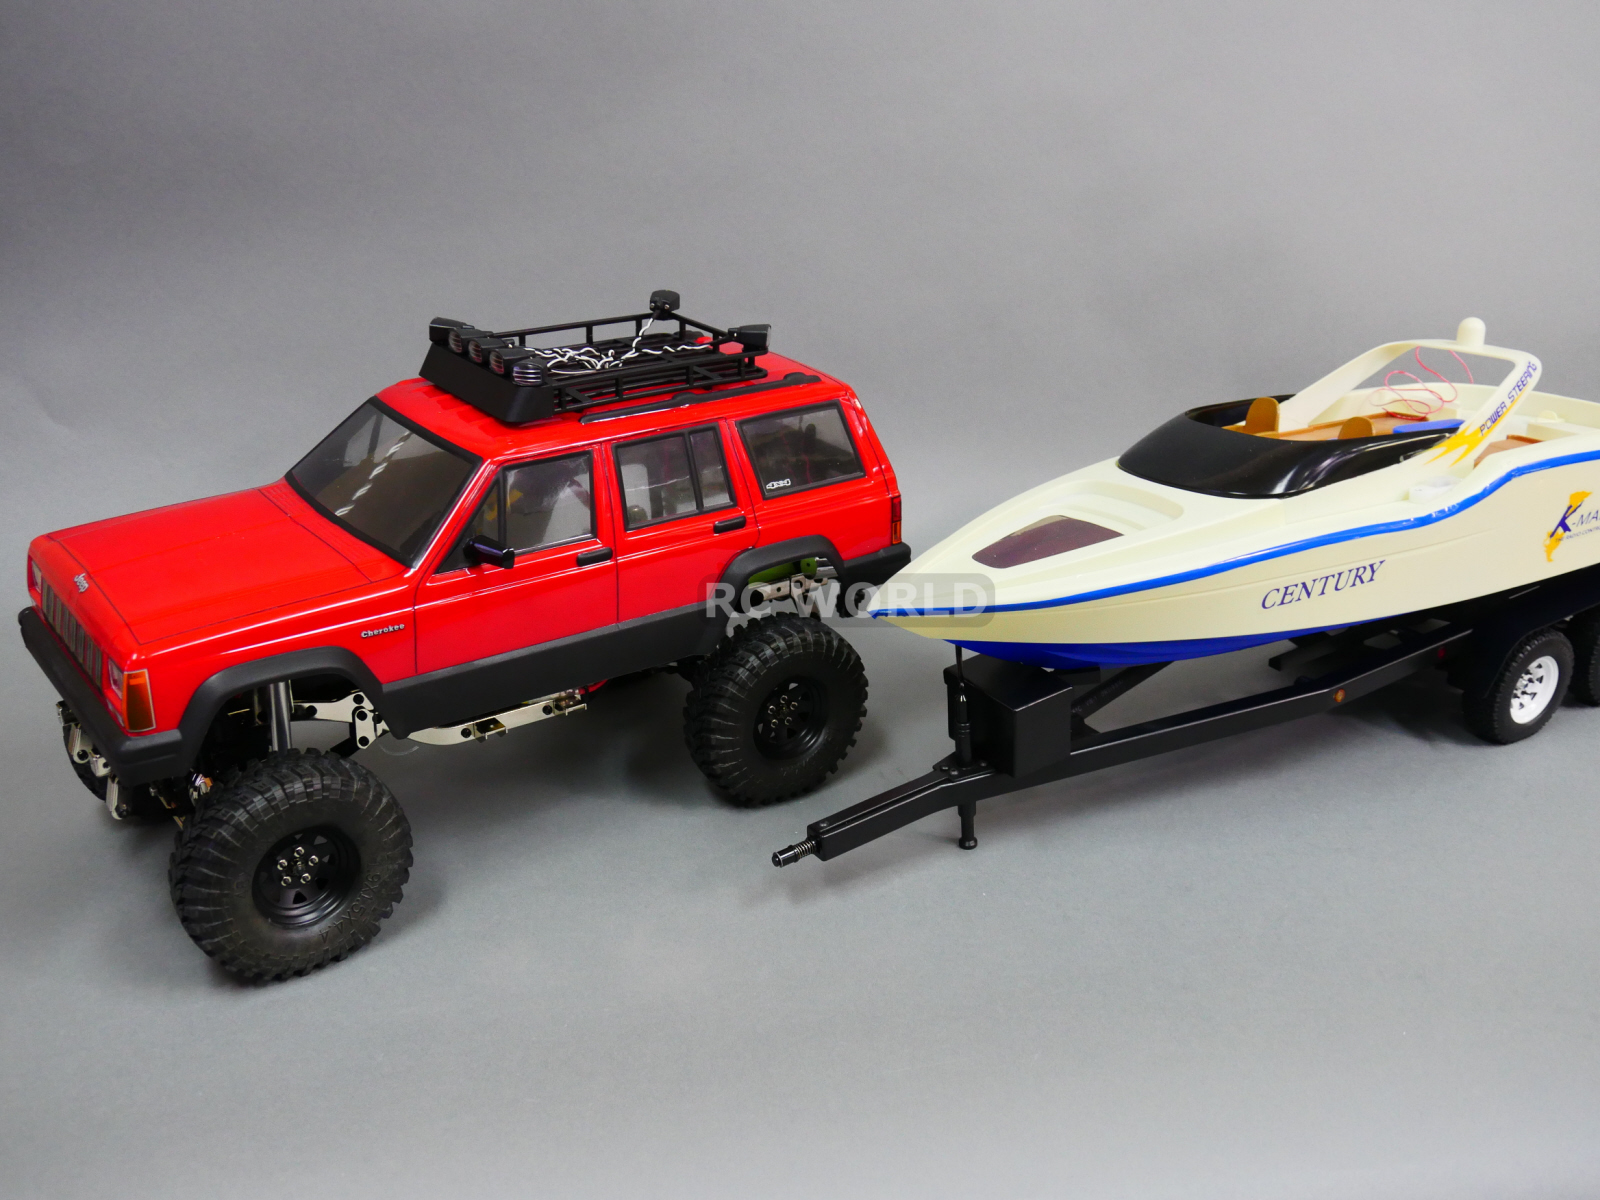 rc gas hydroplane boat with Gas Rc Boats Rtr on Wood Rc Sailboat Plans Free in addition DRAG BOAT race racing ship hot rod rods drag boat custom furthermore Rc Model Boat Hull Plans likewise 104799 Rc Boat 8 additionally 214.